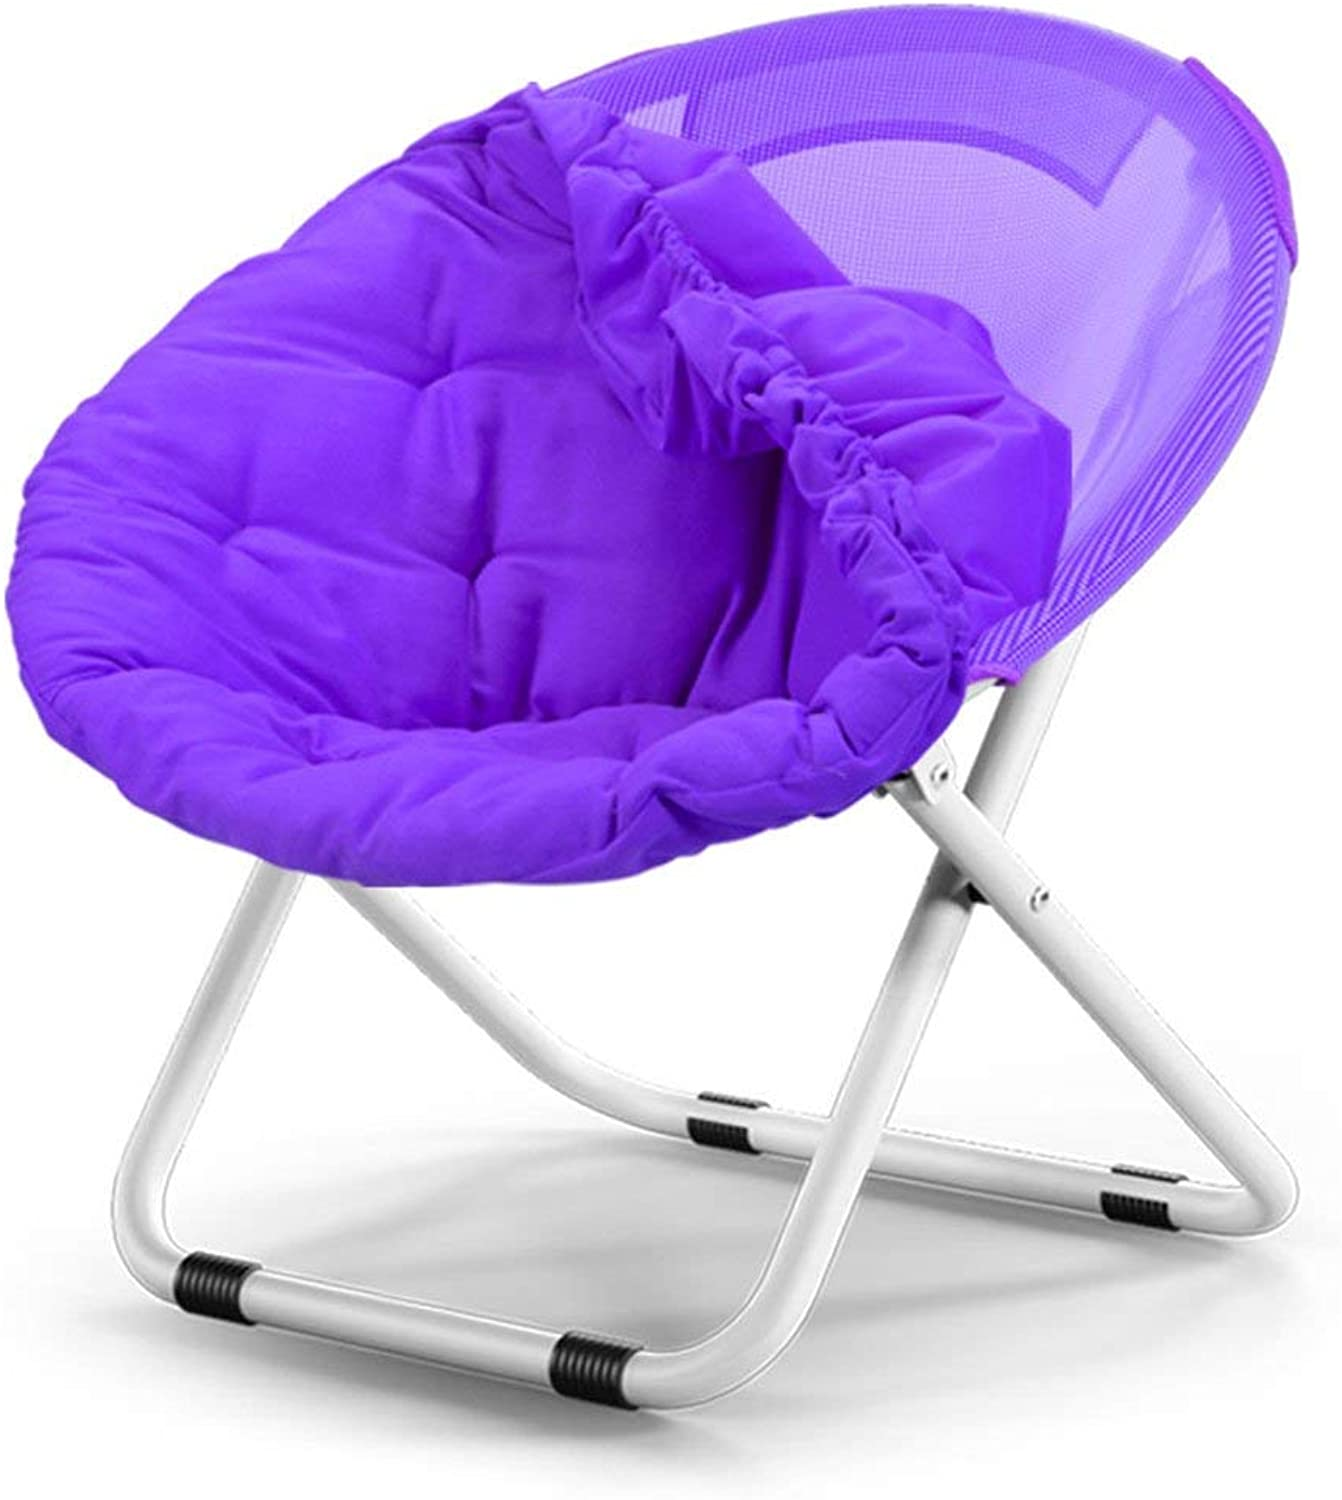 Round Moon Chair Bean Bag Chair- Leisure Camping Chair Holder Steel Frame Folding Portable for Festival Gift